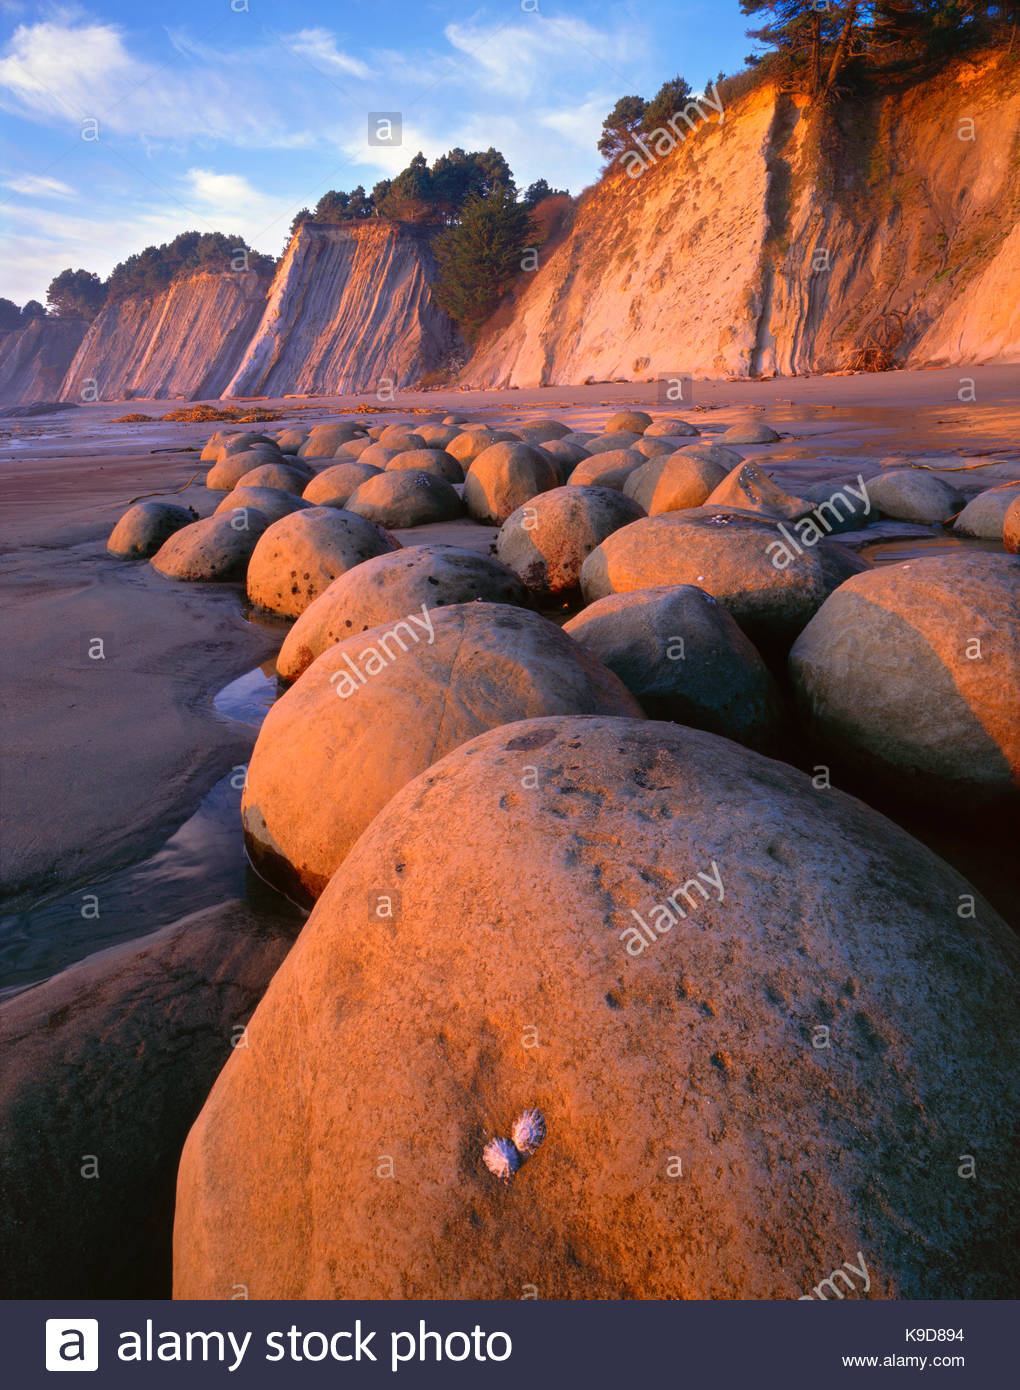 Sunset on Bowling Ball Beach, Schooner Gulch State Park, Mendocino Coast, California - Stock Image